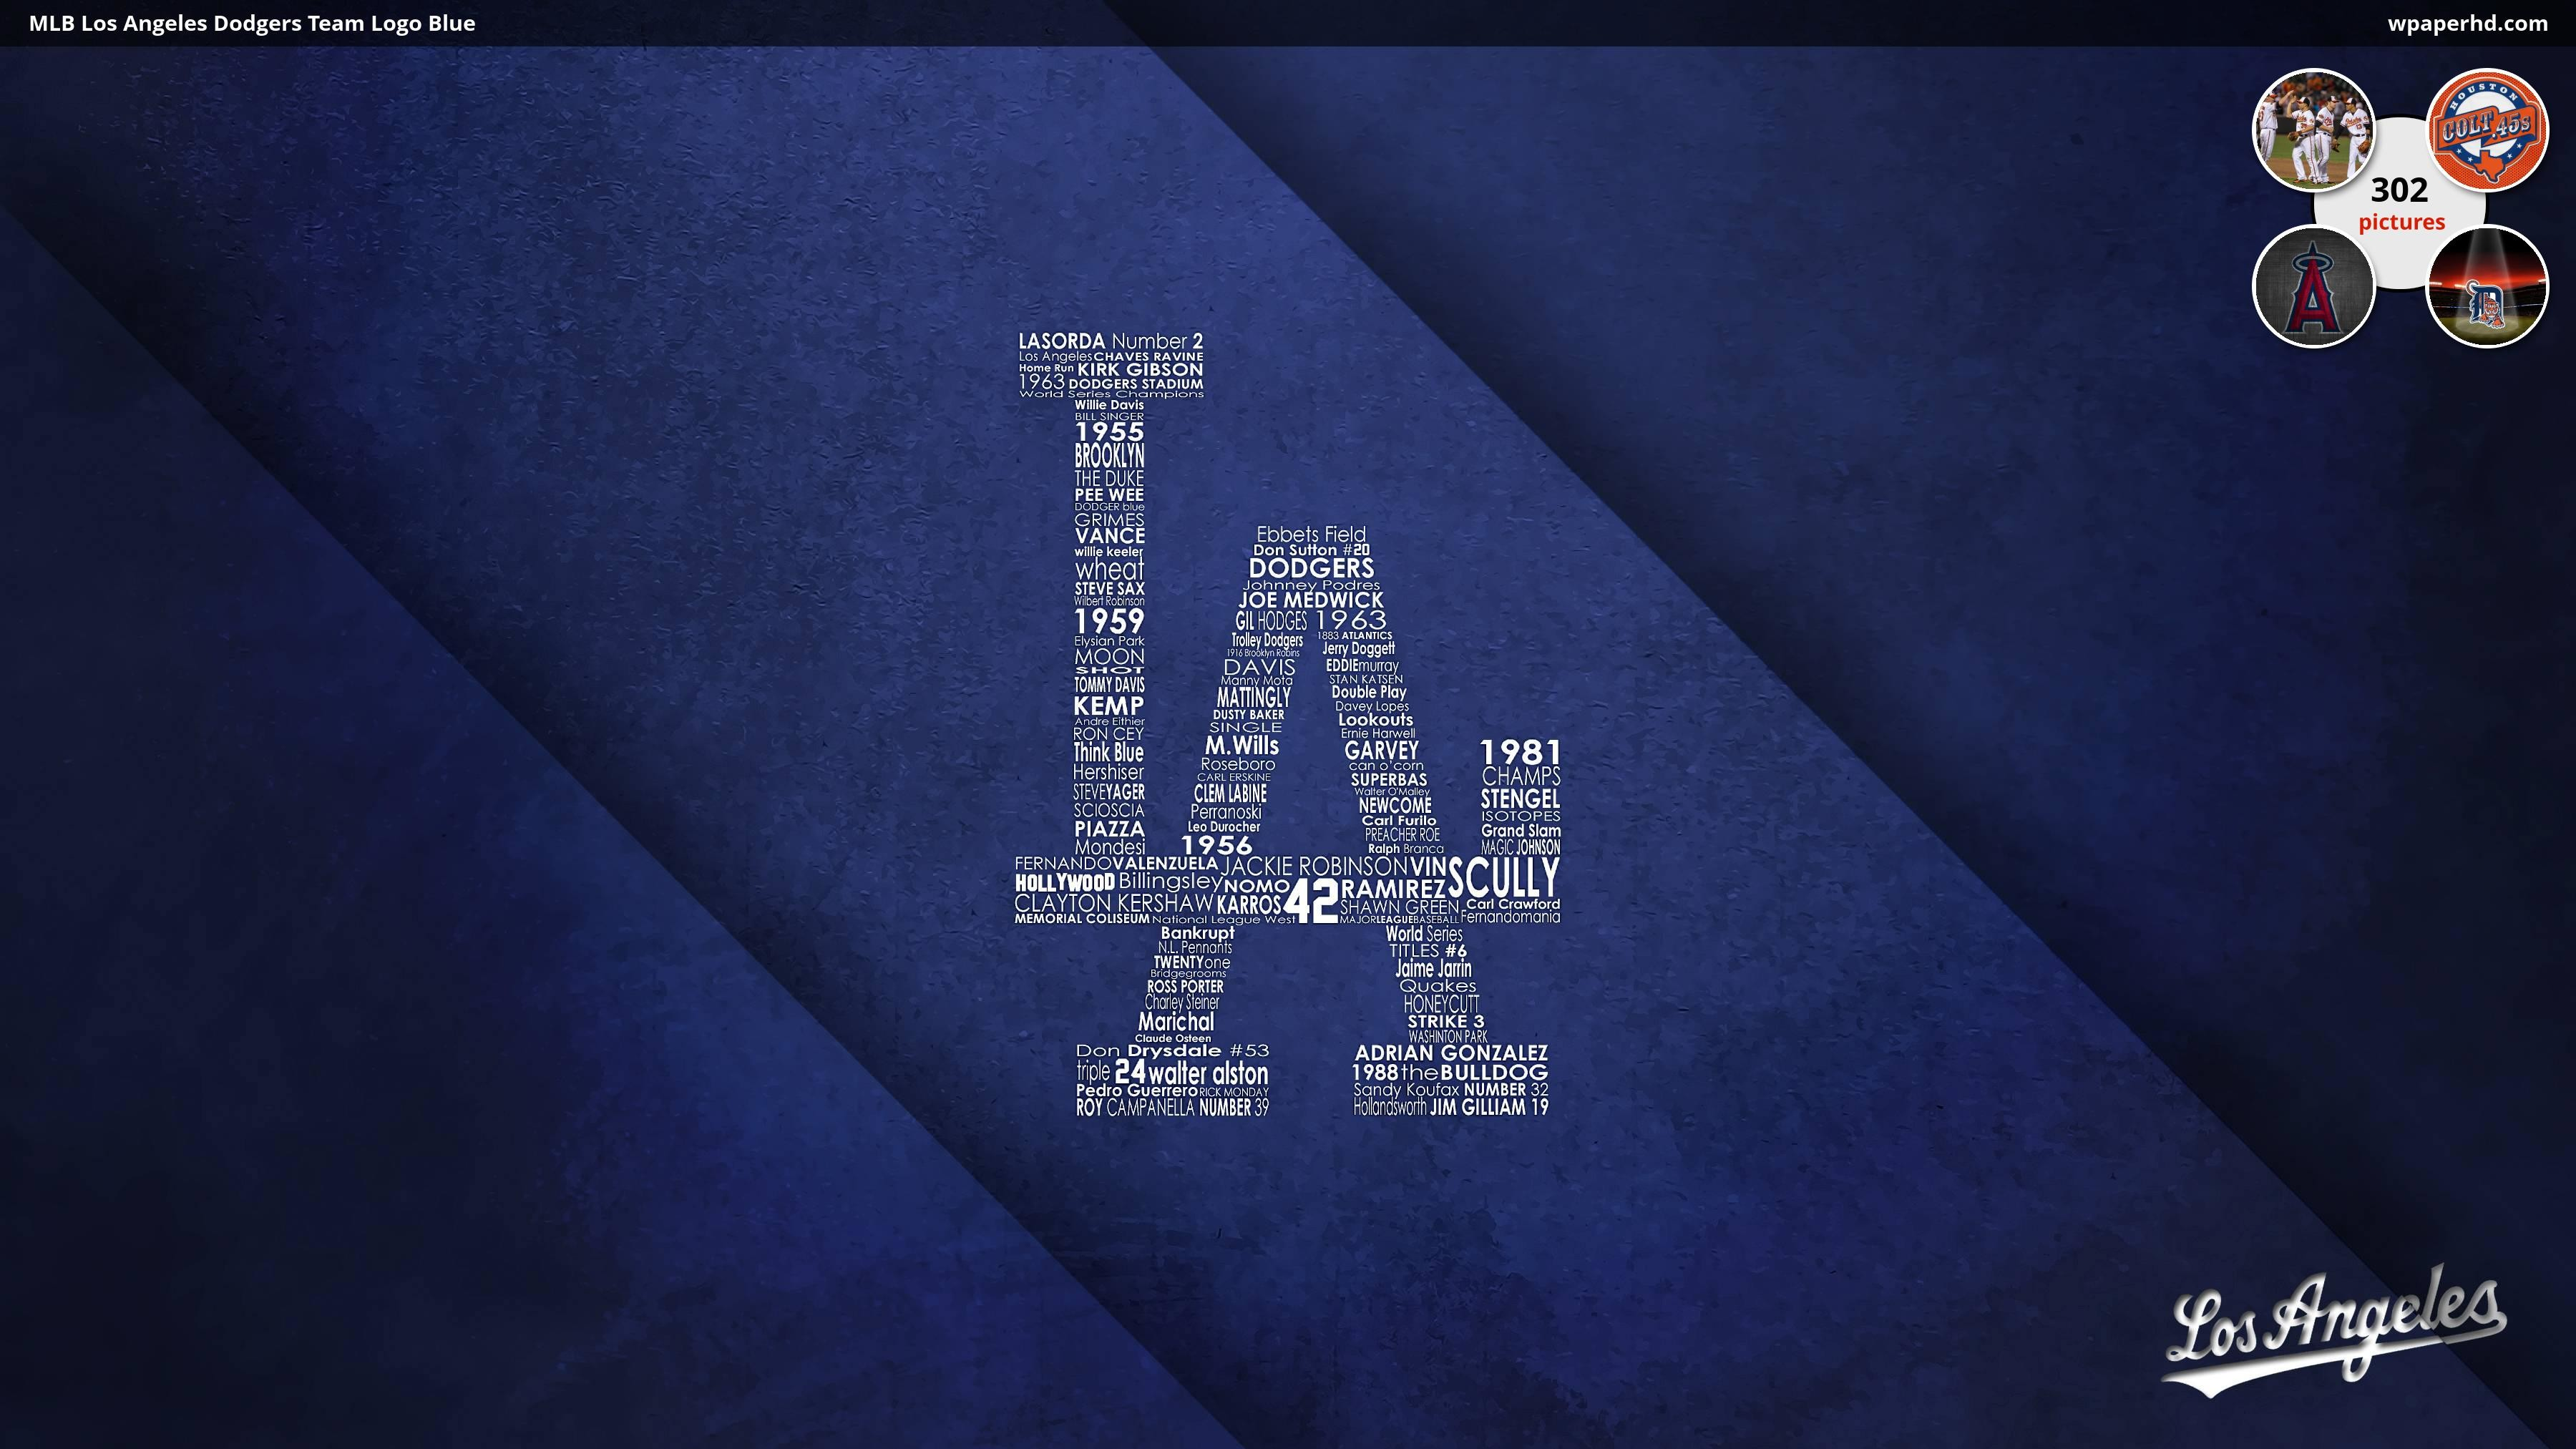 3600x2025 MLB Los Angeles Dodgers Team Logo Blue Wallpaper